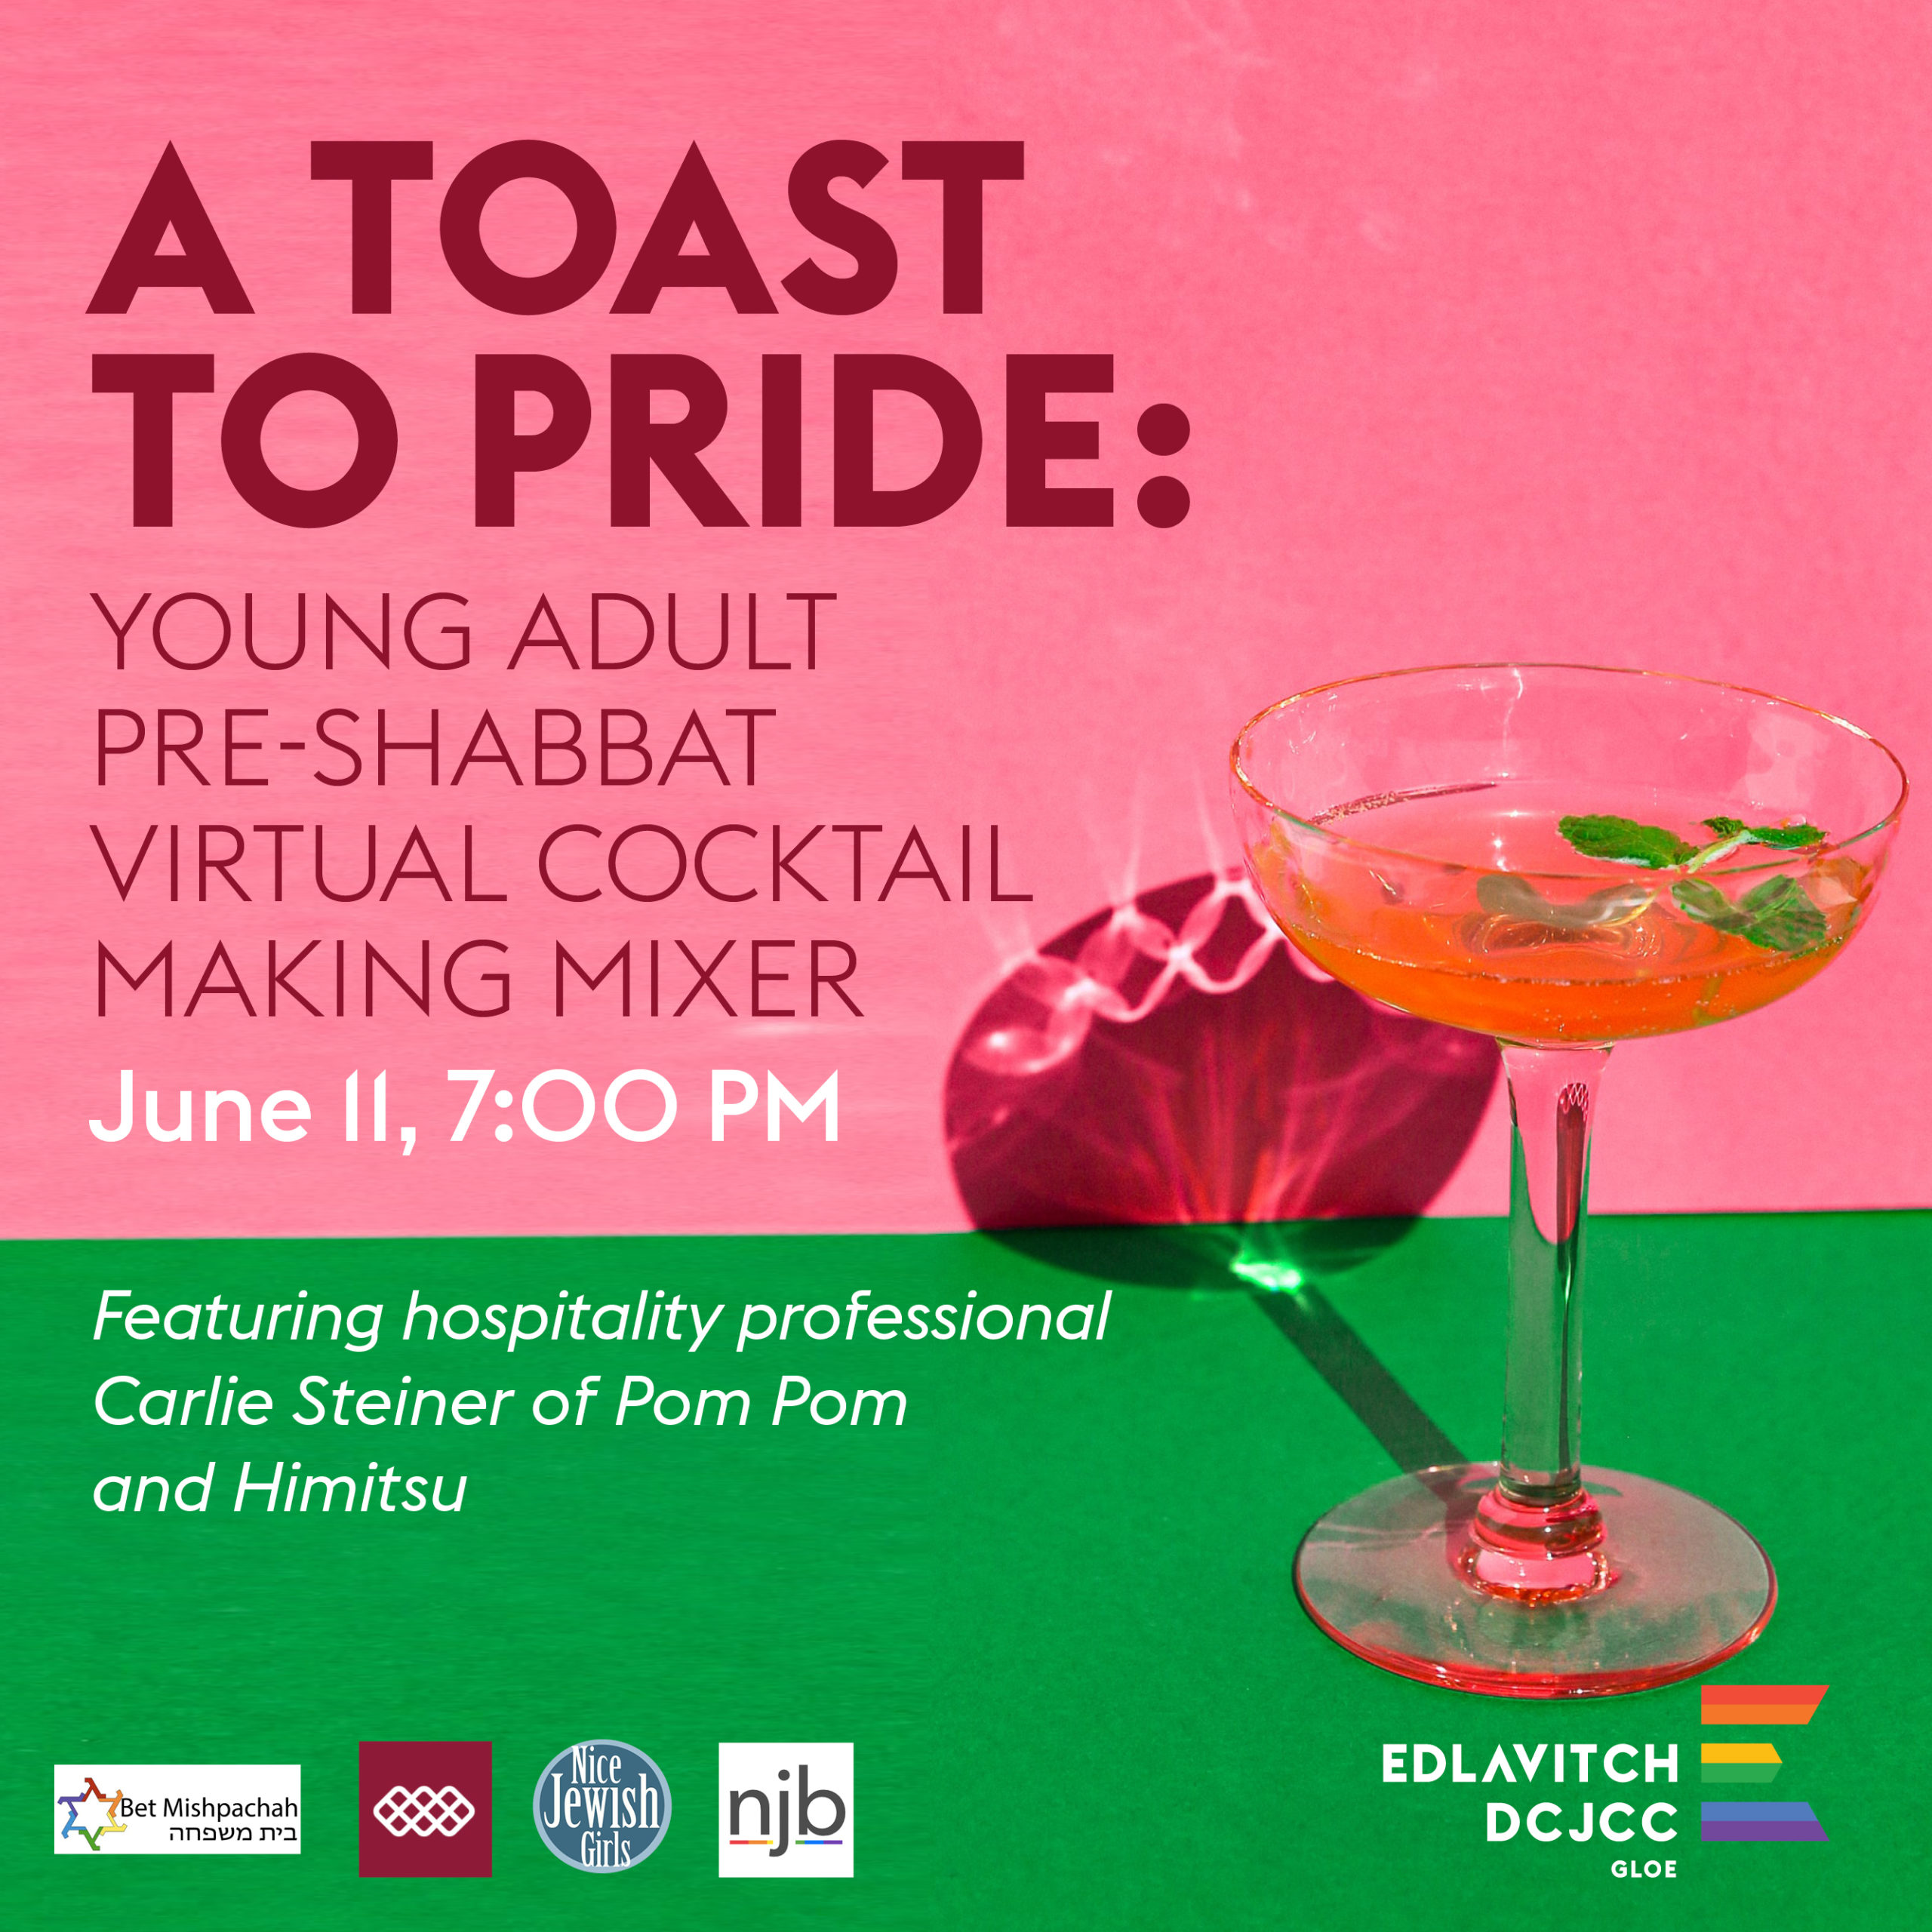 Image is of a brightly-colored cocktail against a pink and green background. Dark red text reads: A Toast to Pride: Young Adult Pre-Shabbat Virtual Cocktail Making Mixer